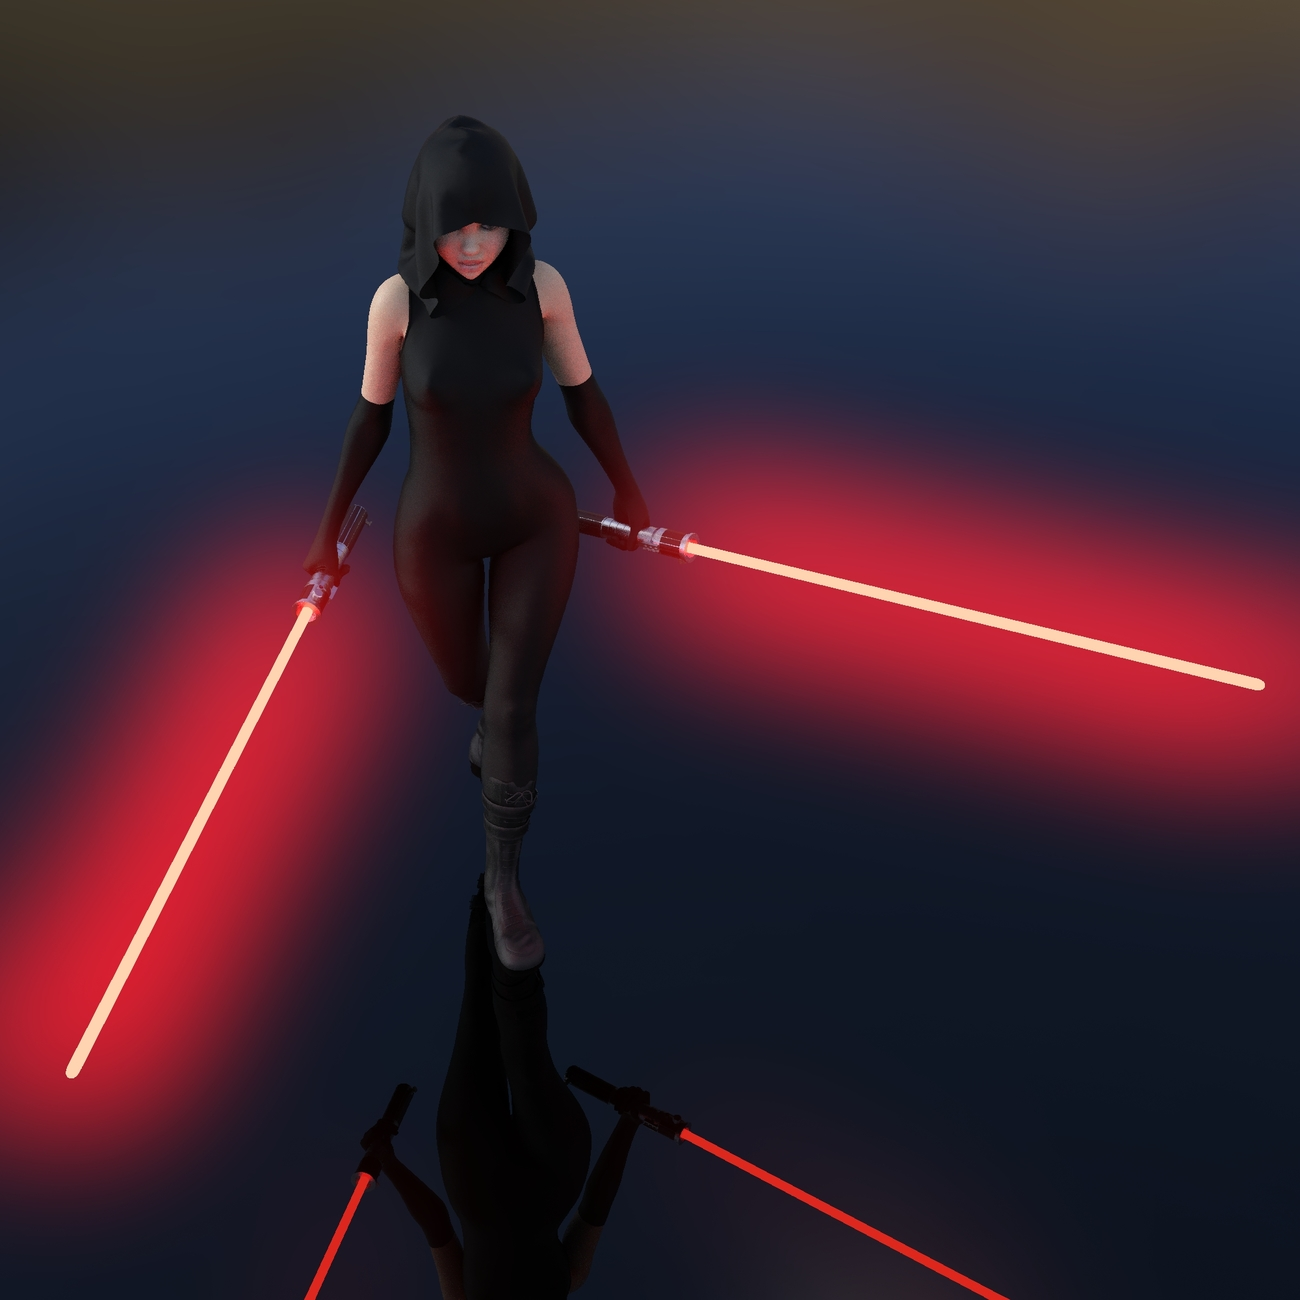 Welcome to the Darkside by Belit